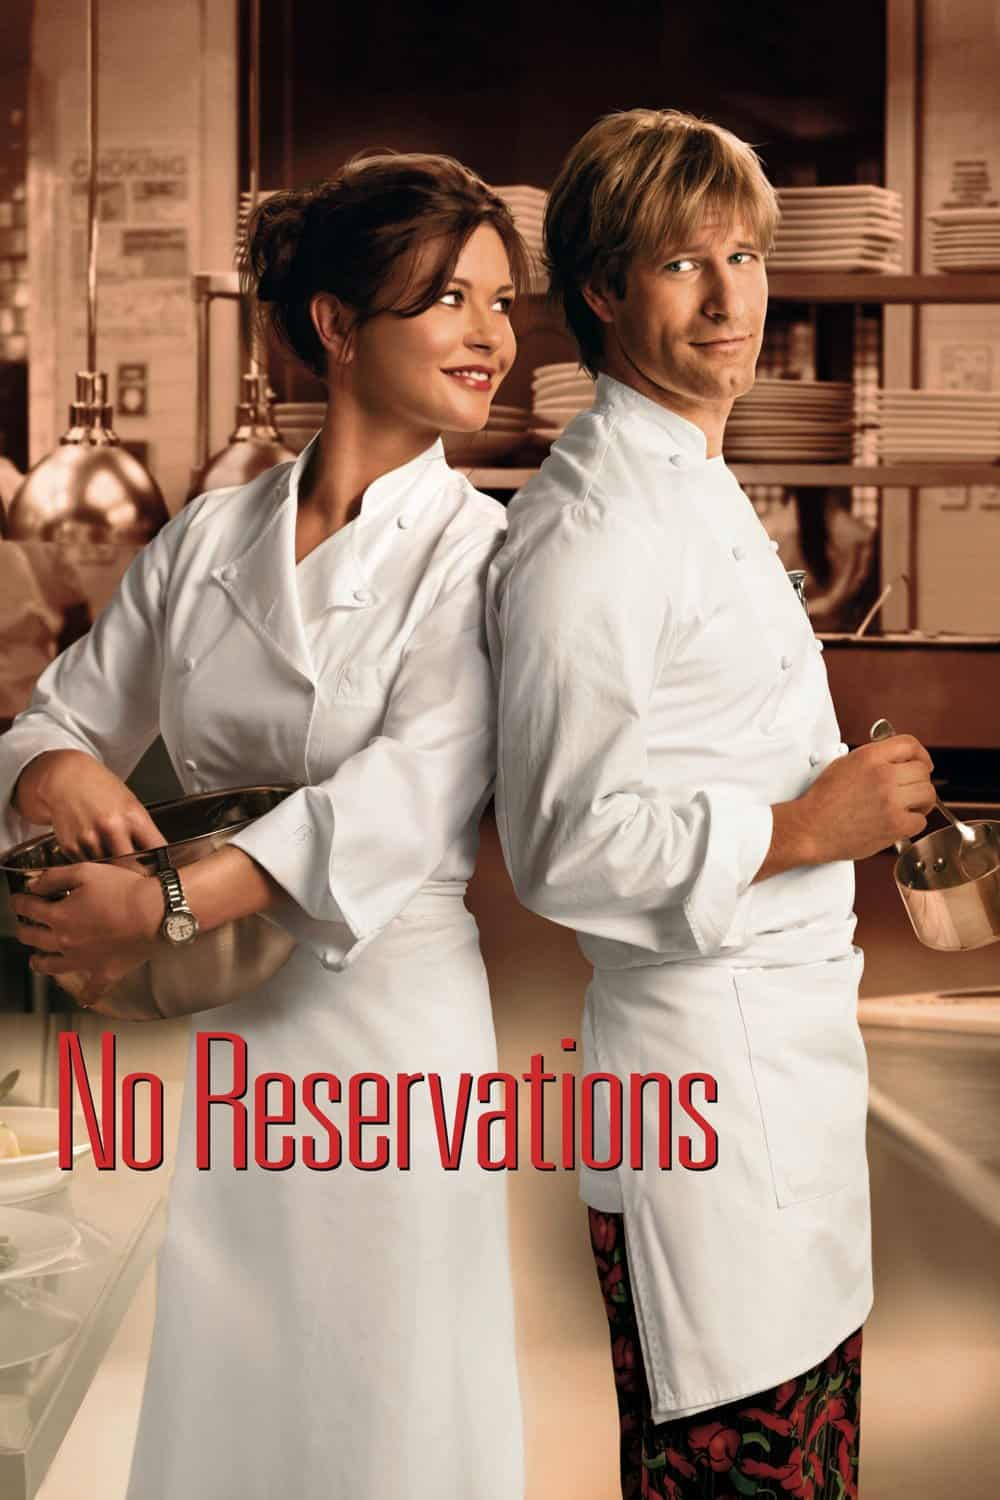 No Reservations, 2007